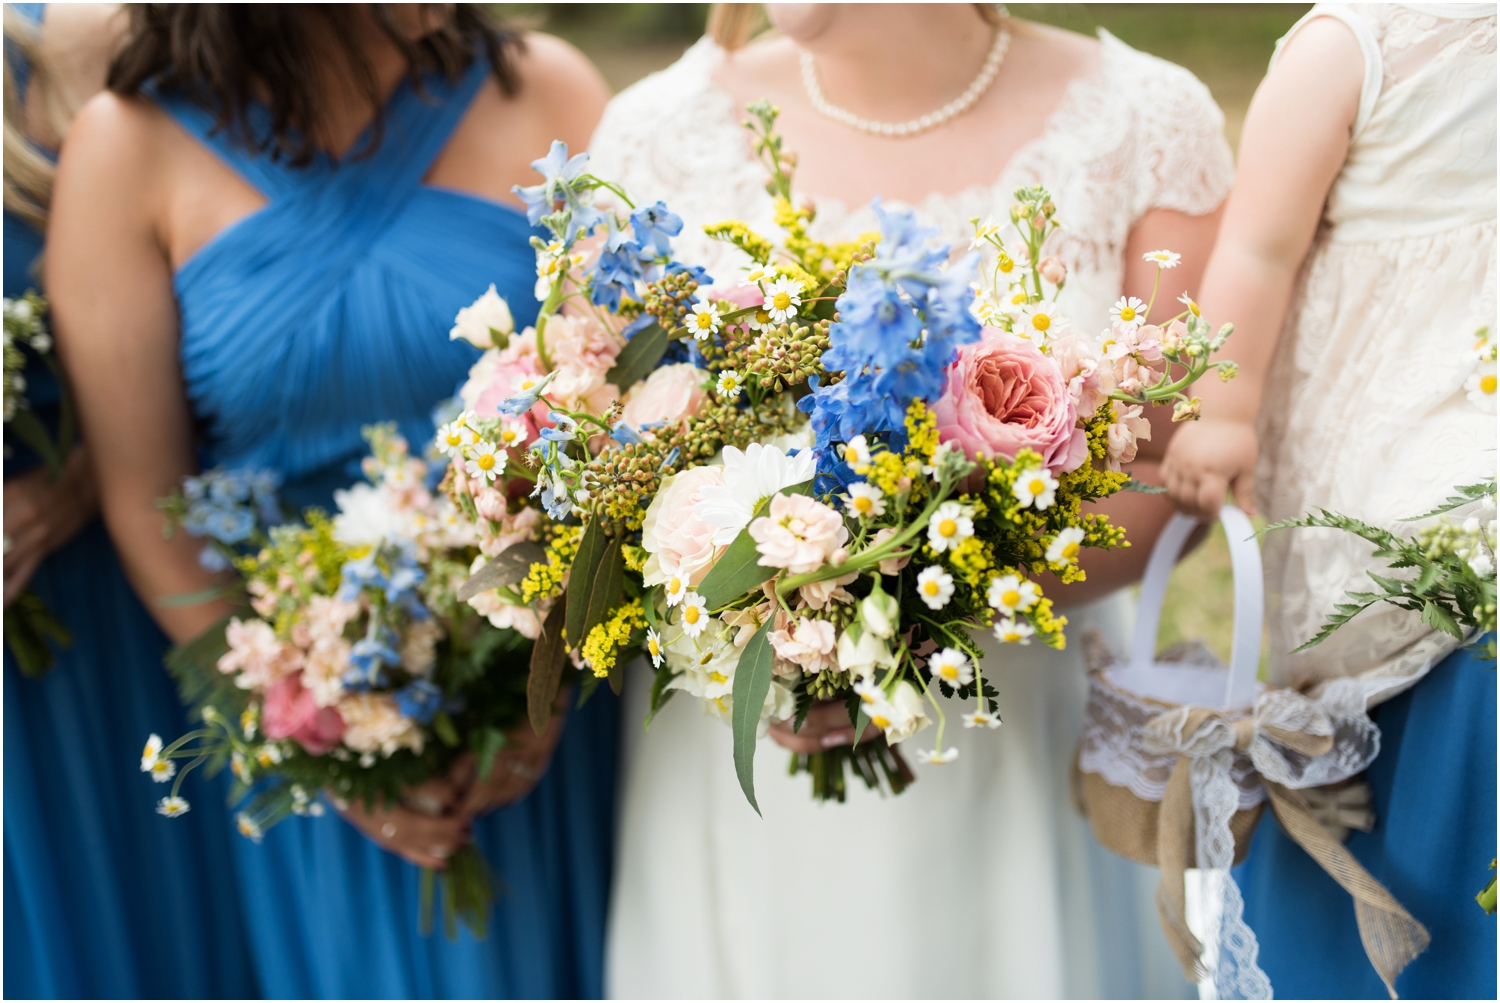 Sowell Farms Milton Florida Rustic Woodsy Barn Wedding Photographer bridesmaids bride bridal party bouquets